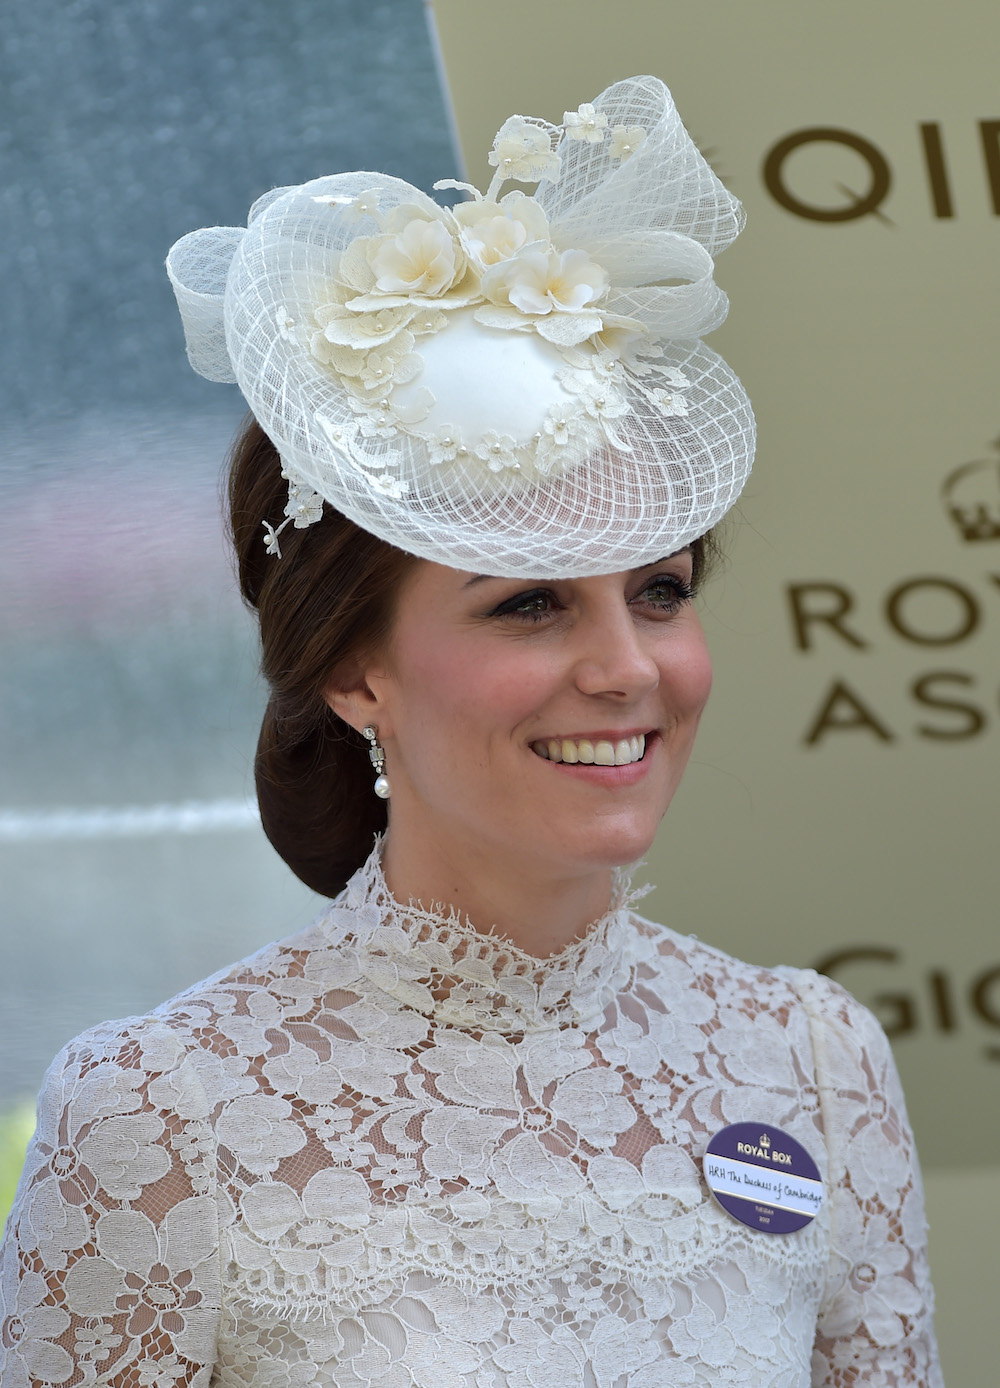 royal ascot name tag